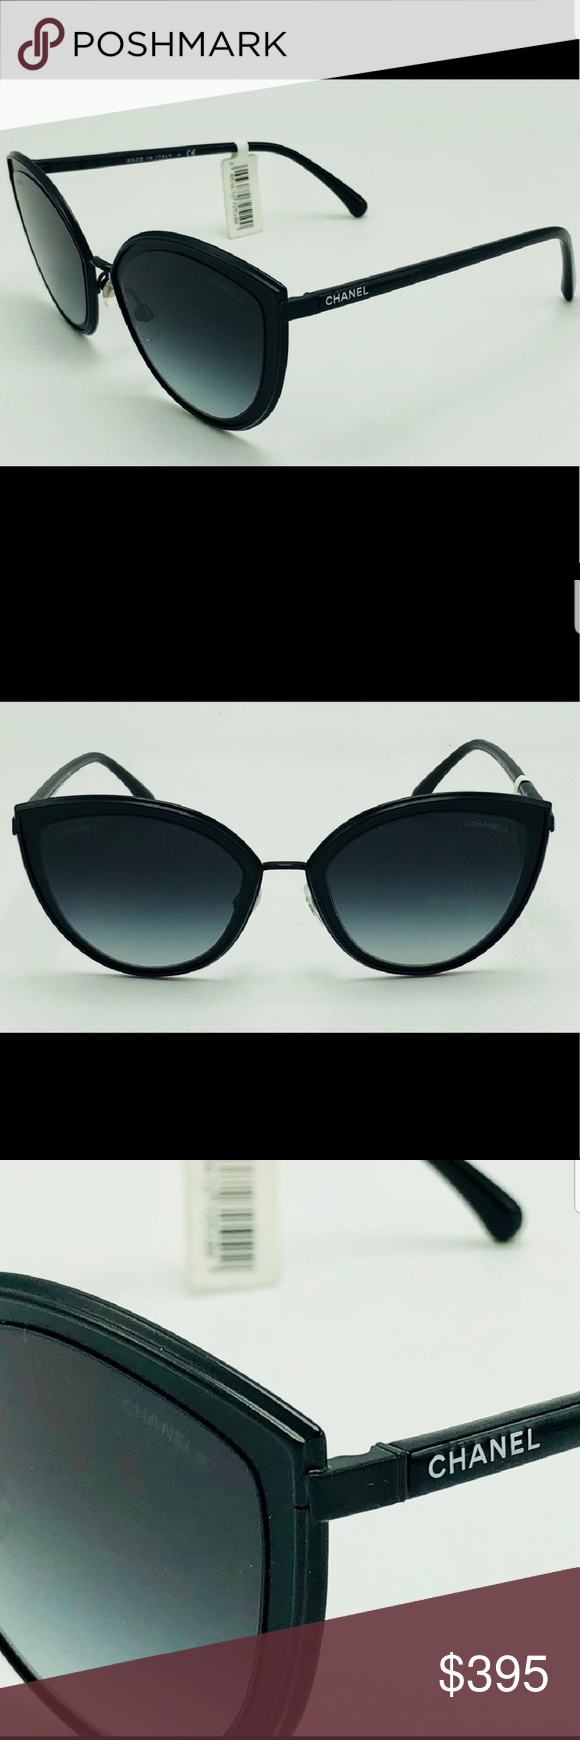 98116f484d0b ❤❤NWT MATTE BLACK CHANEL SUNGLASSES ❤❤ NWT CHANEL Accessories Sunglasses